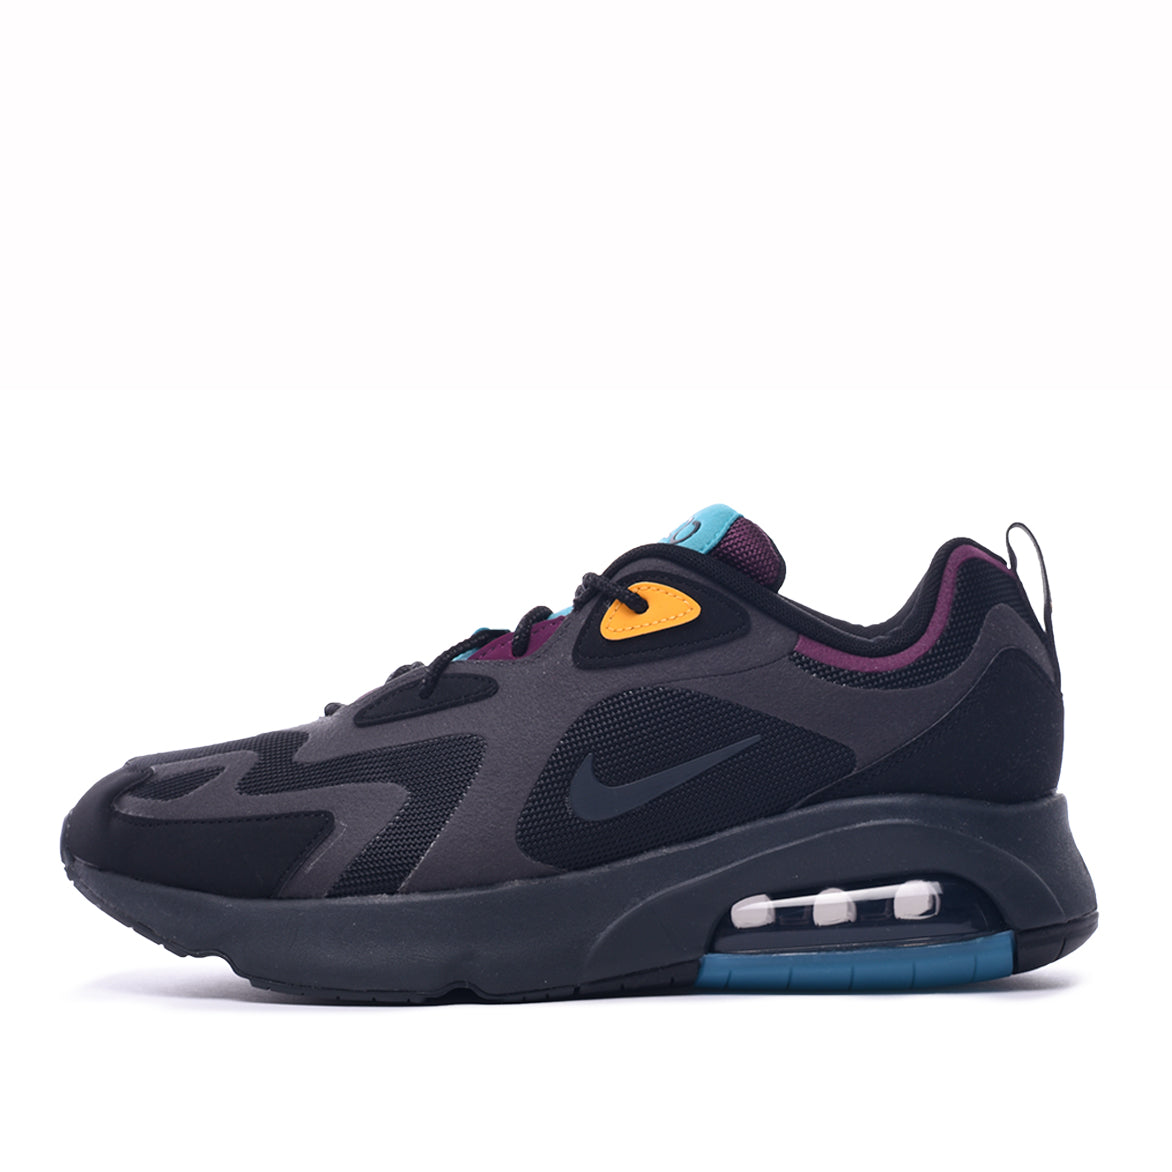 AIR MAX 200 - BLACK / ANTHRACITE / BORDEAUX